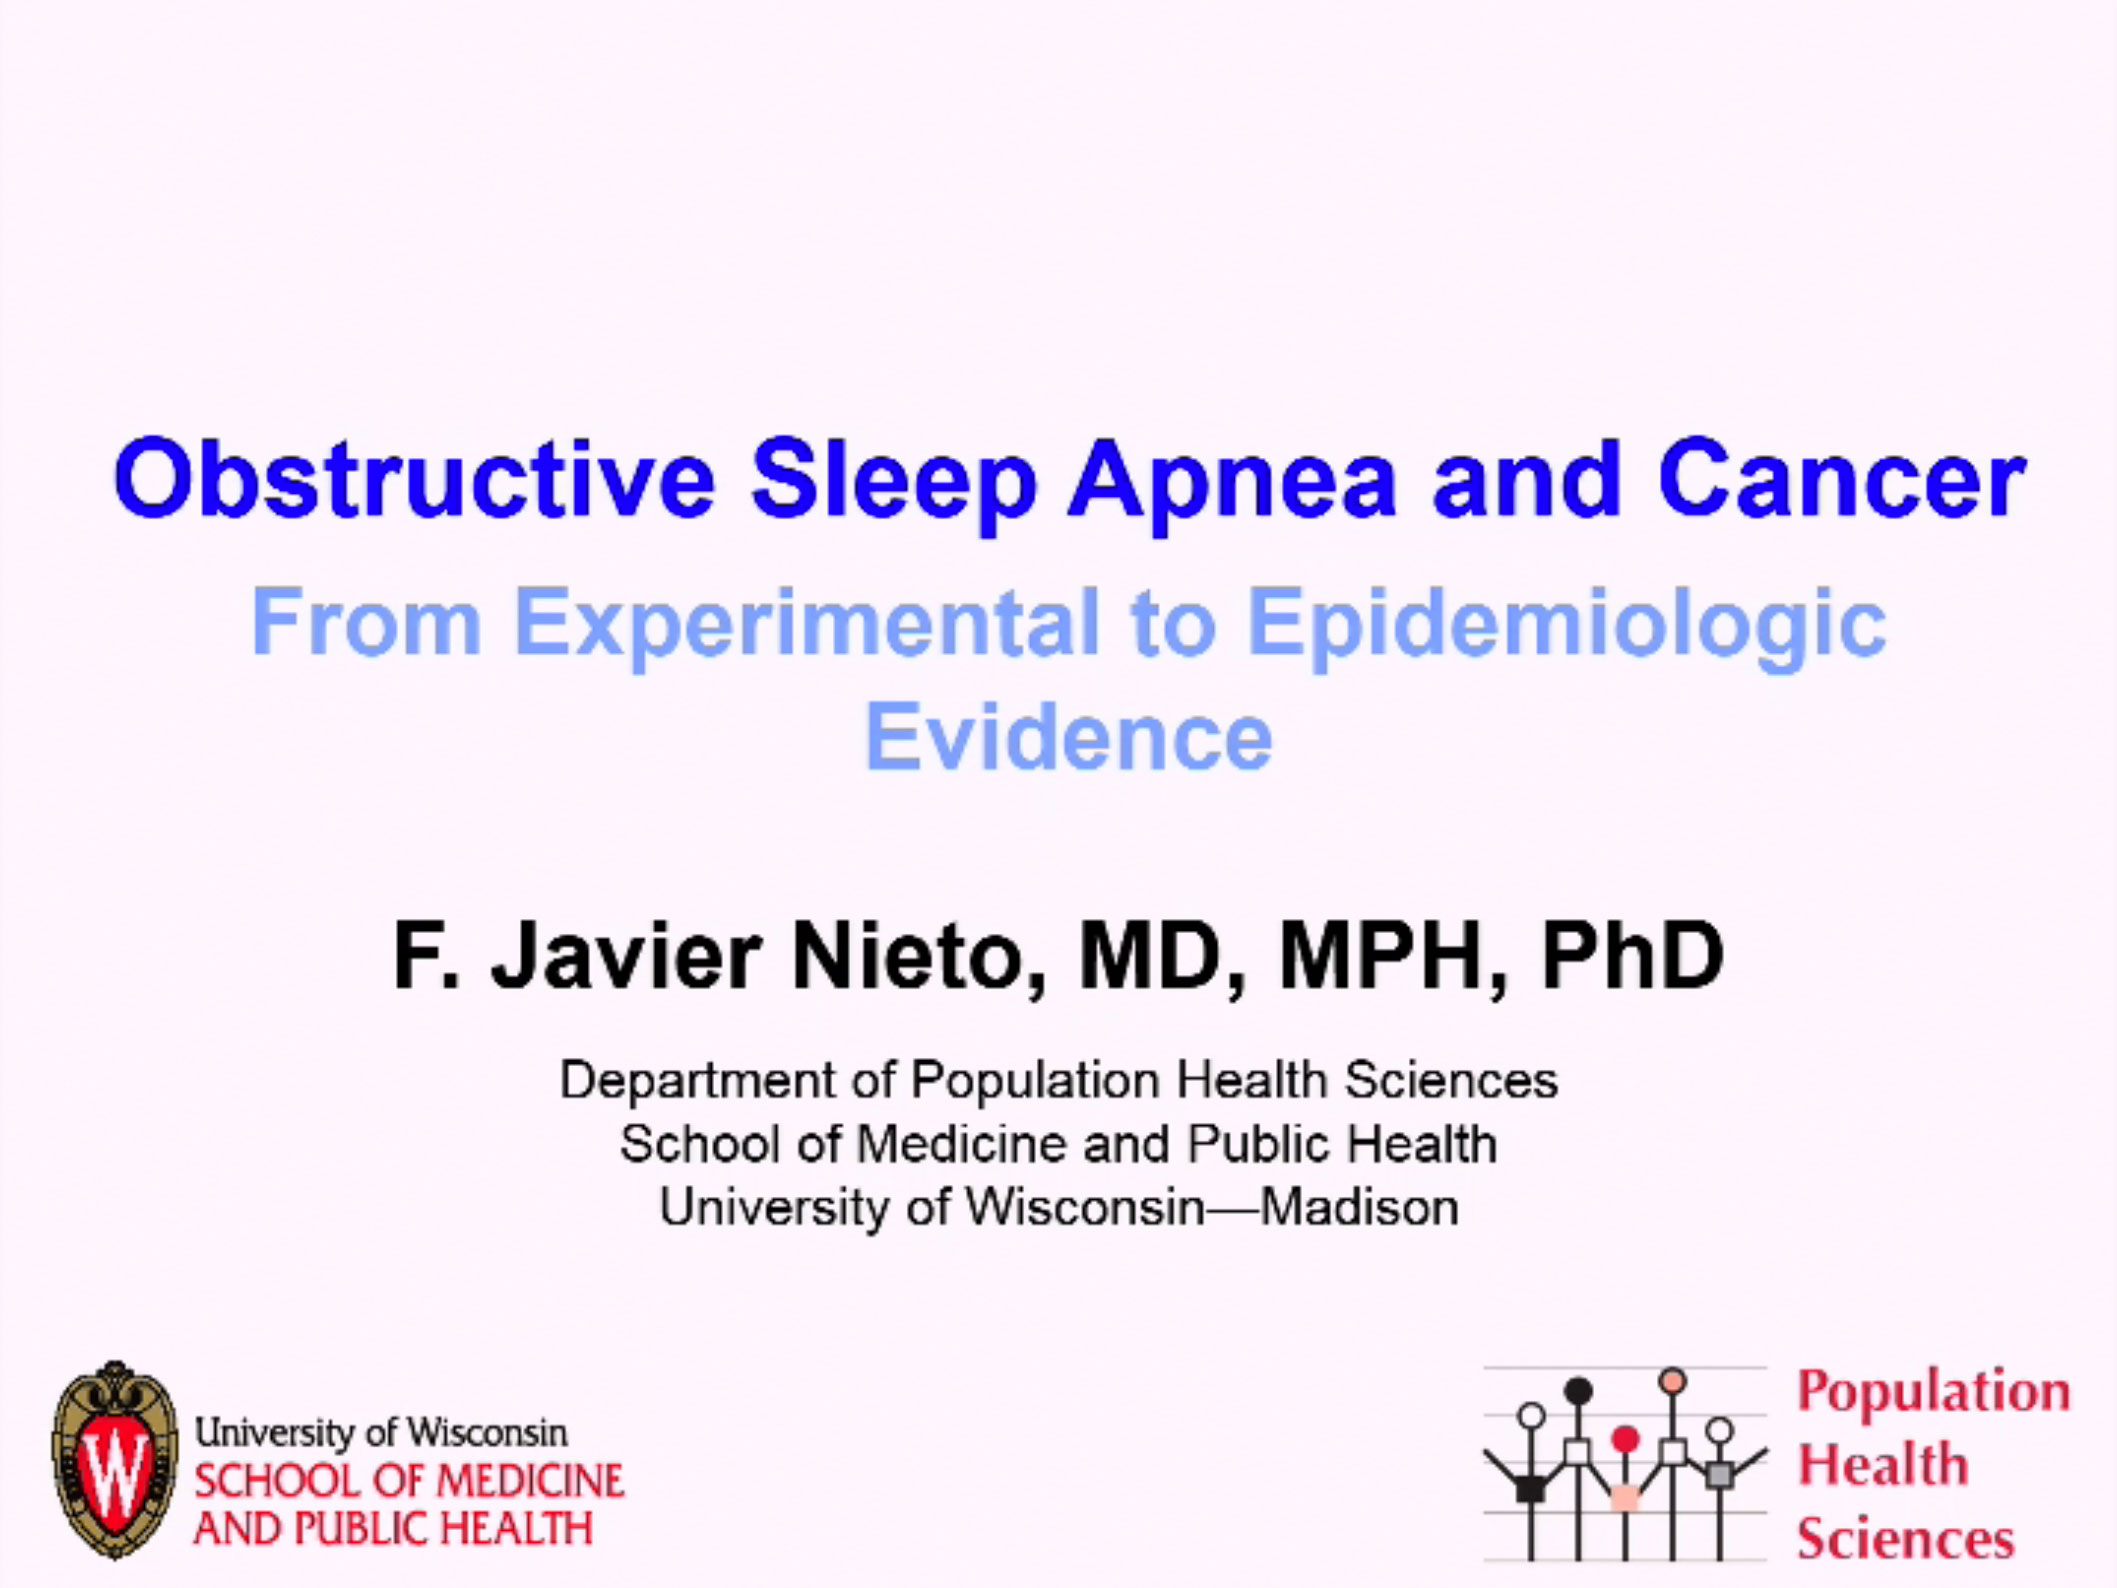 Picture from Obstructive Sleep Apnea and Cancer: From Experimental to Epidemiologic Evidence